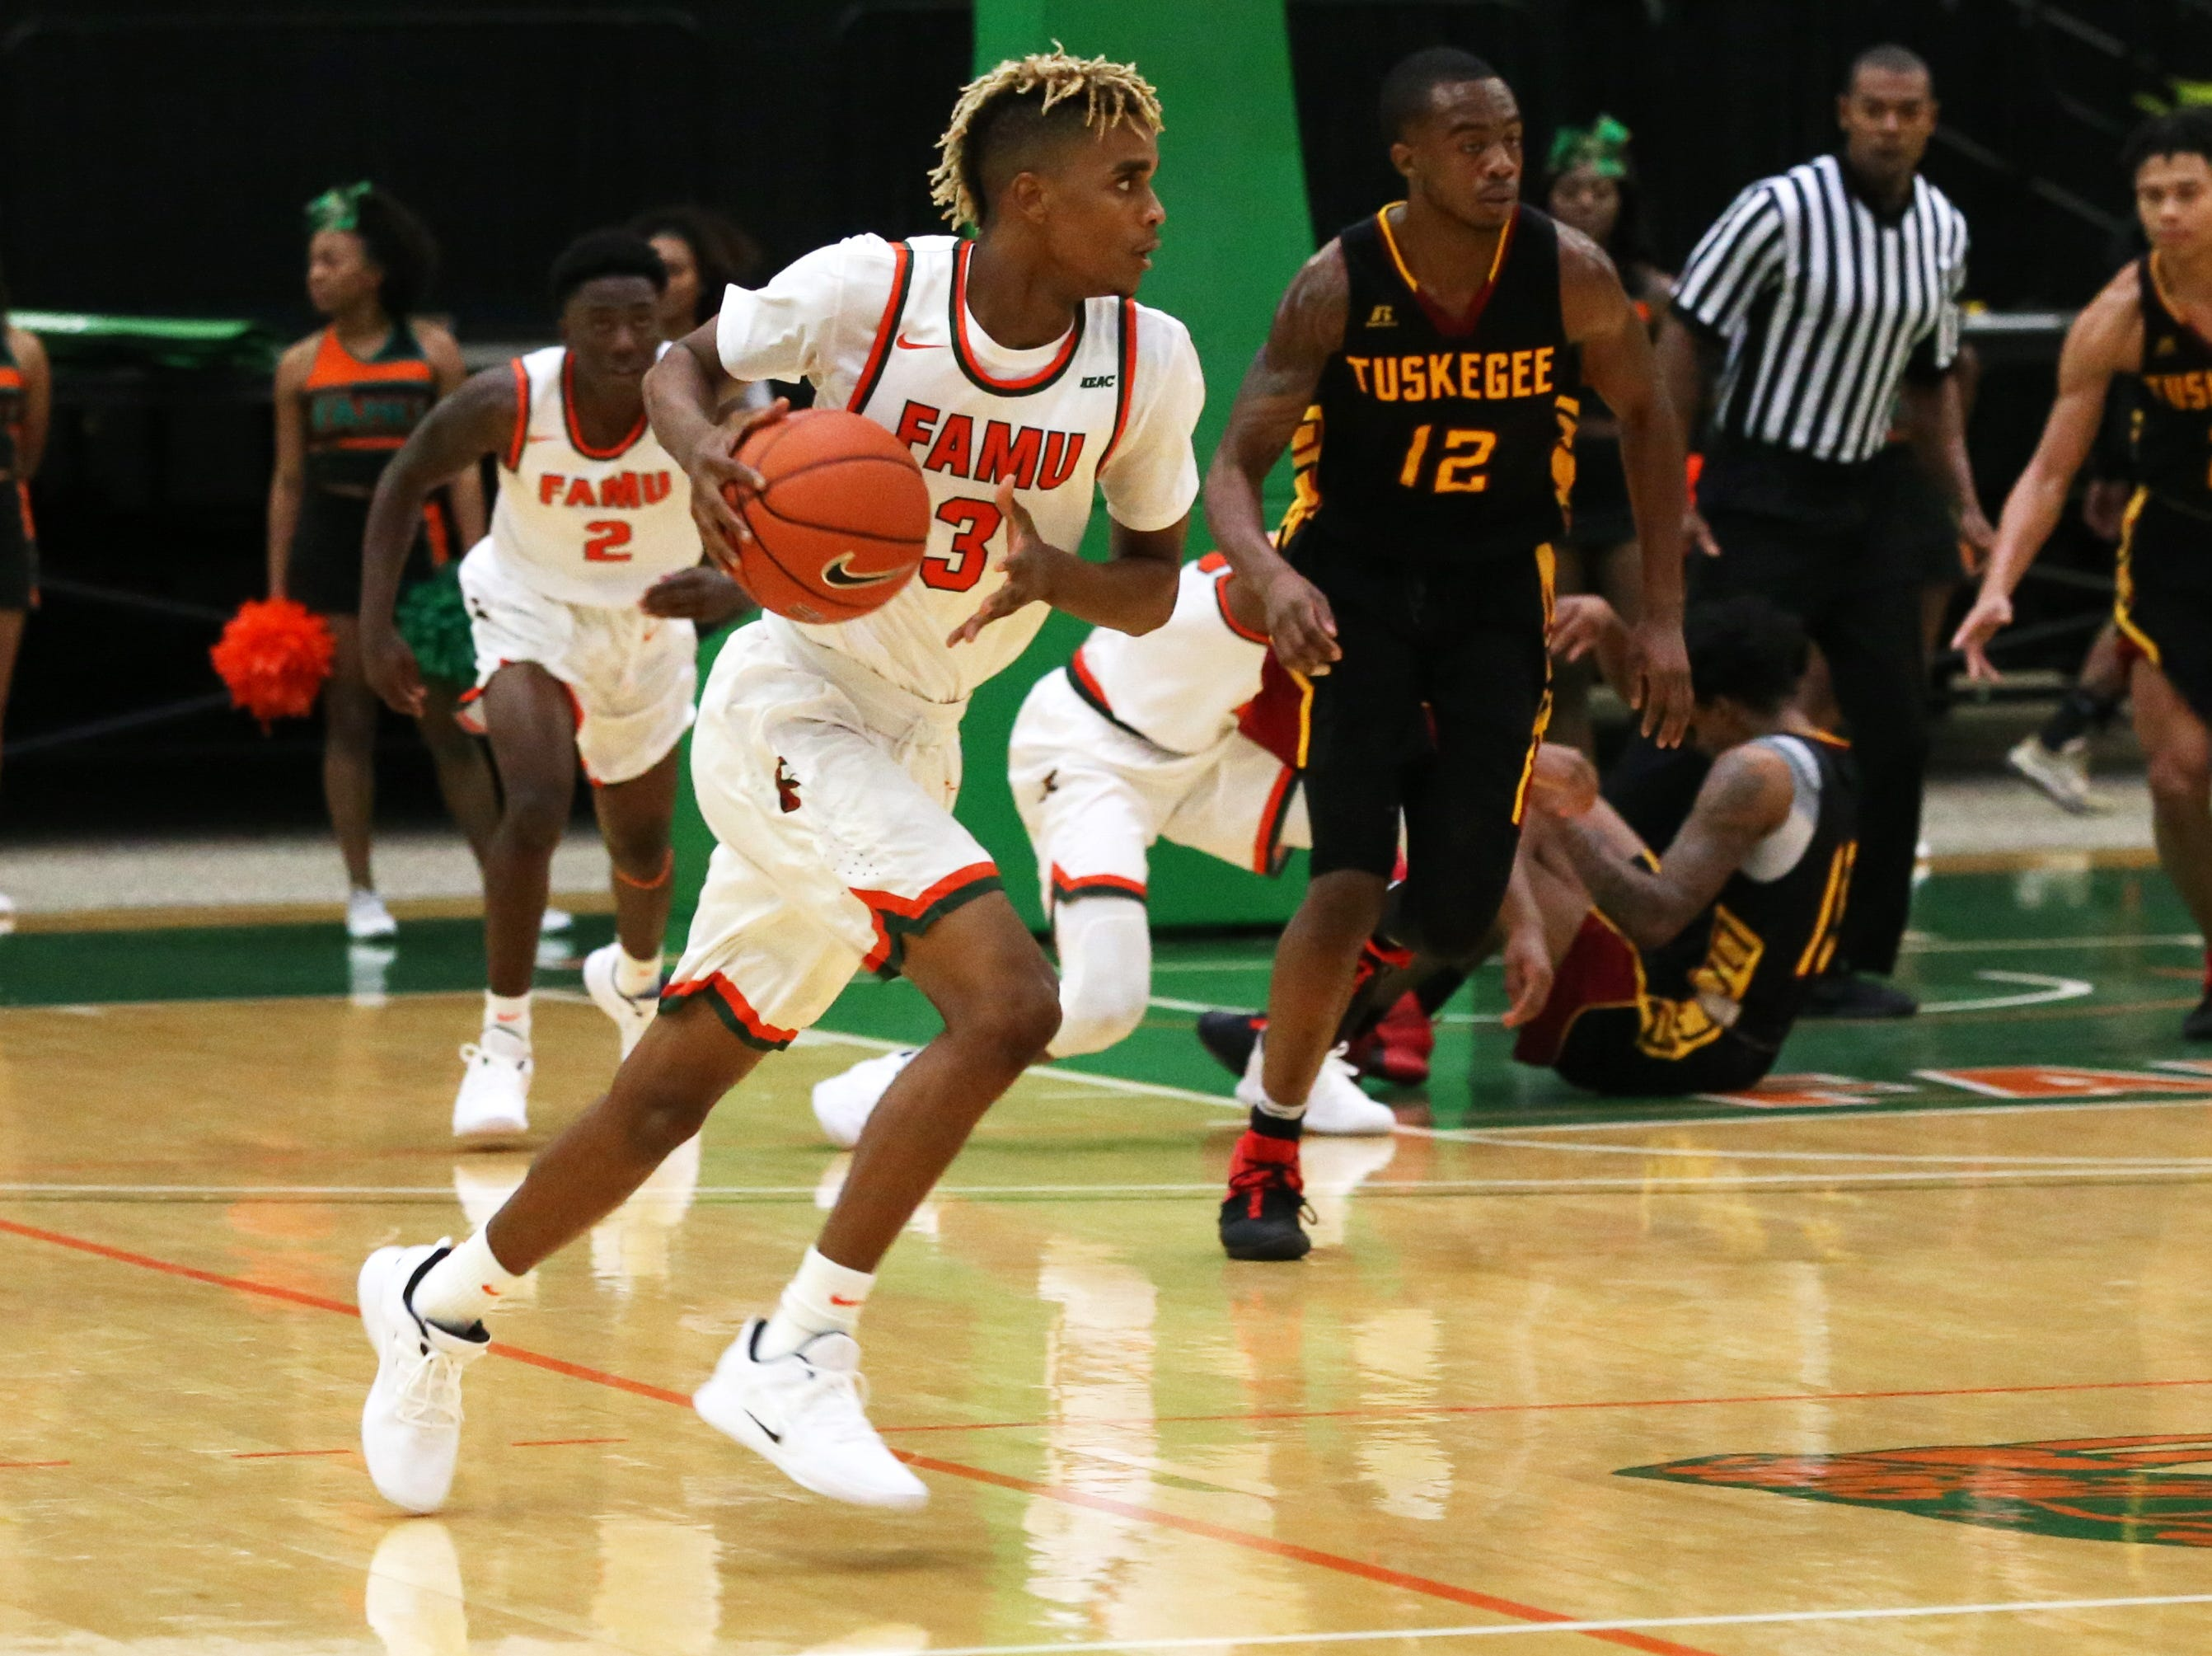 Florida A&M Rattlers guard MJ Randolph (3) takes the rebound and drives down the court as the FAMU Rattlers take on the Tuskegee Golden Tigers in their first home game of the season in the Lawson Center, Saturday, Nov. 10, 2018.